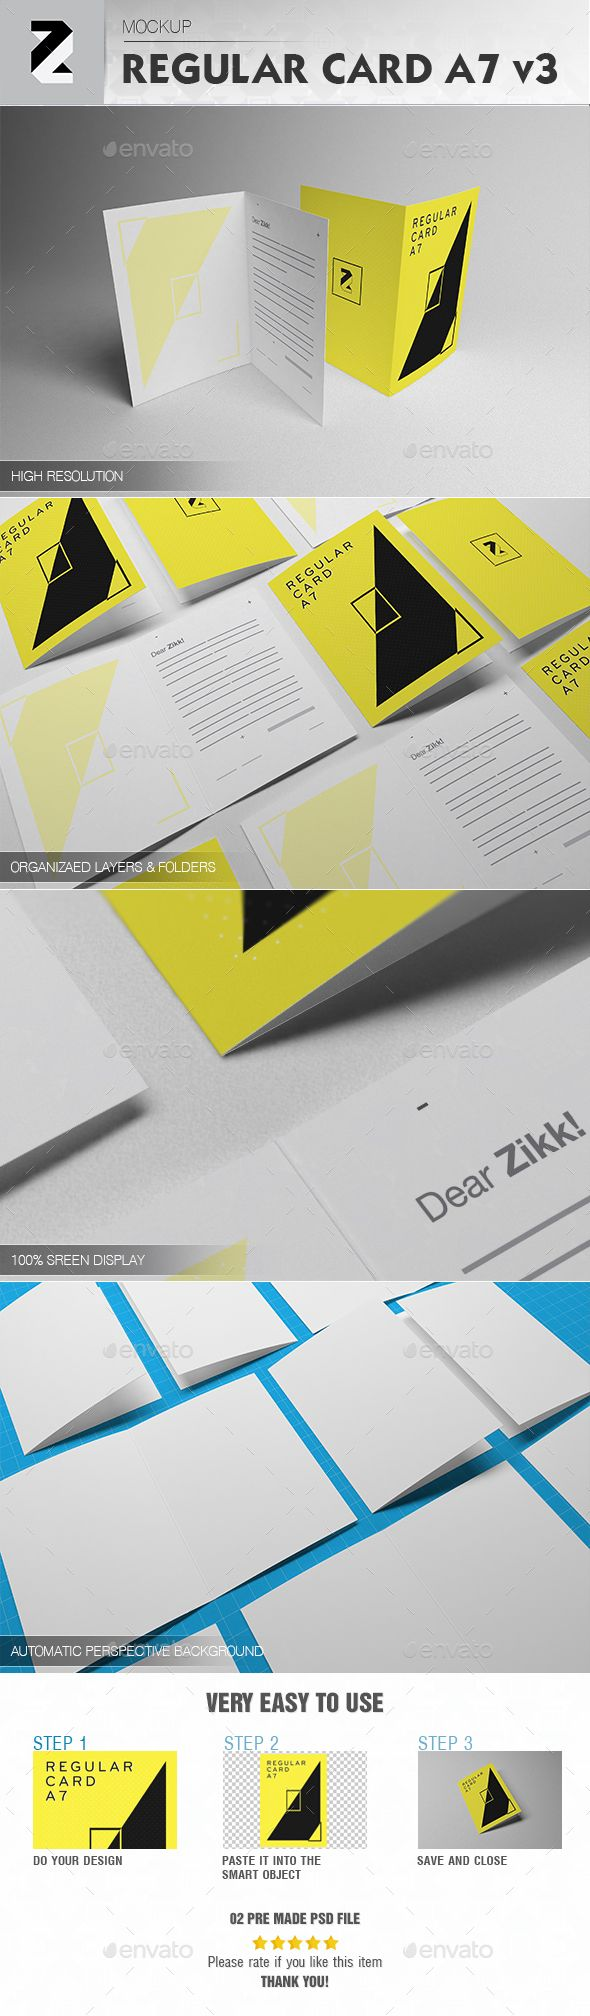 Regular Card A7 Mockup v3 | Mockup, Brochures and Font logo